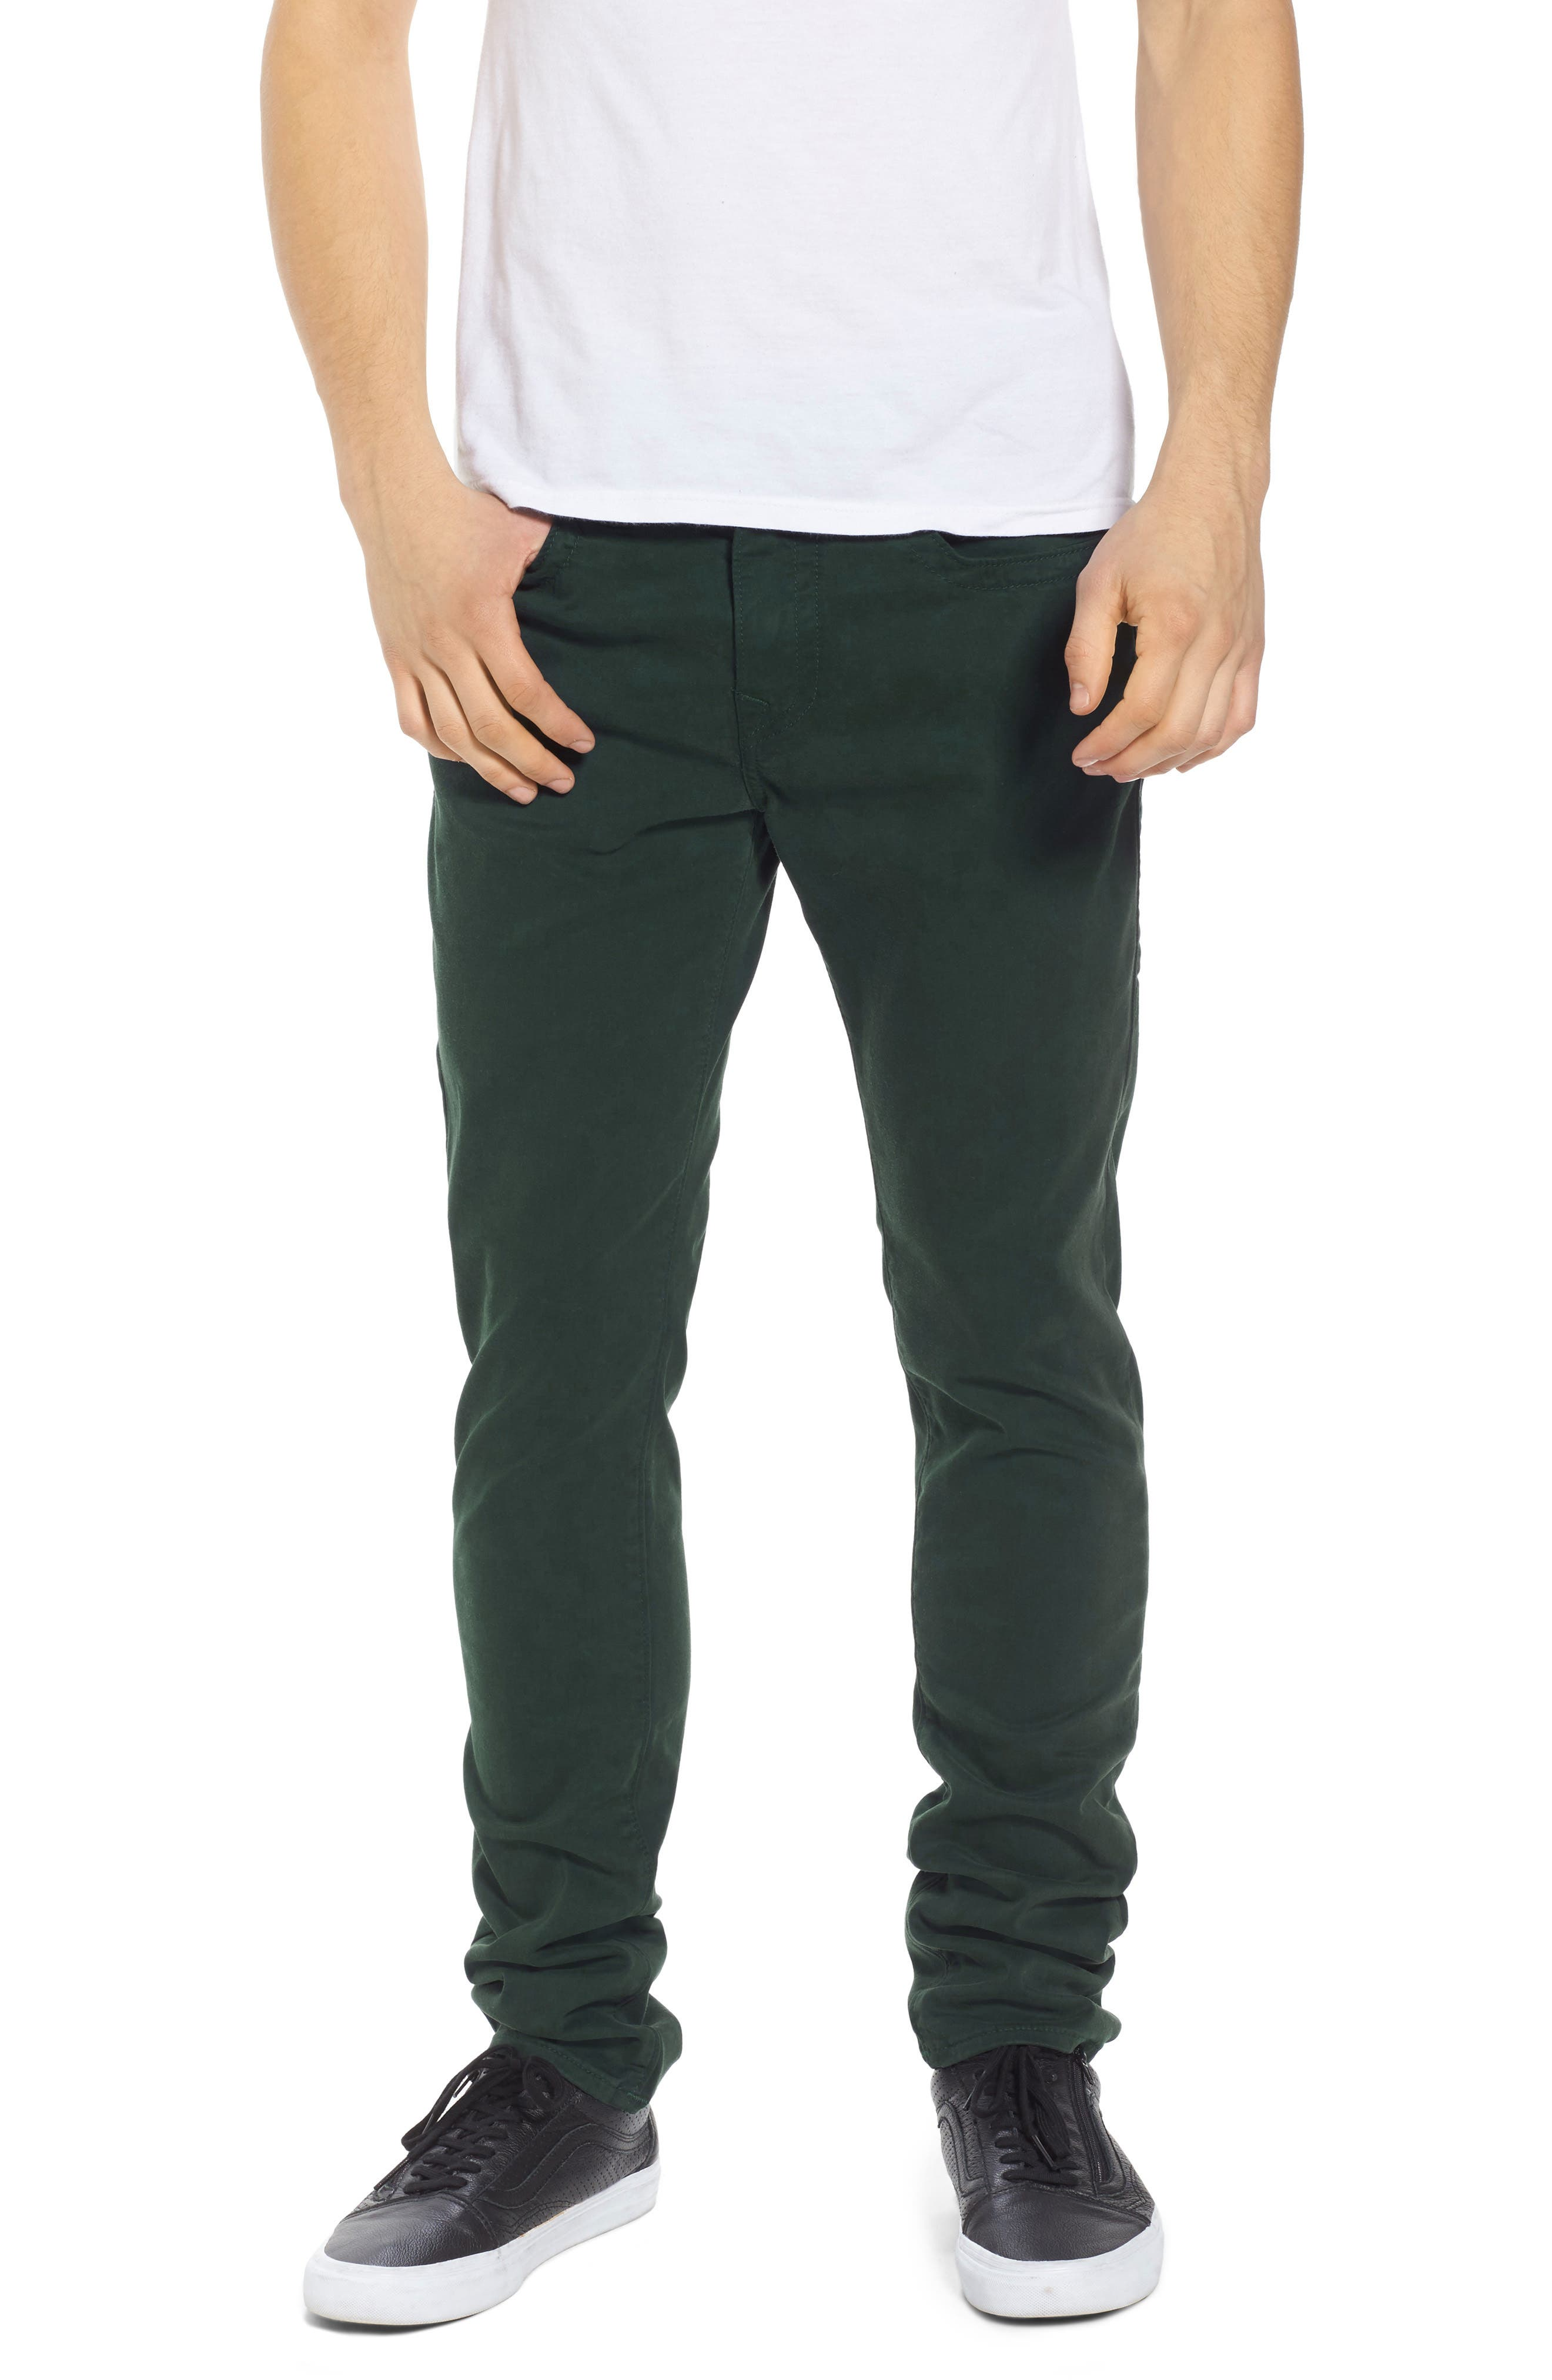 Rocco Skinny Fit Jeans,                         Main,                         color, 300